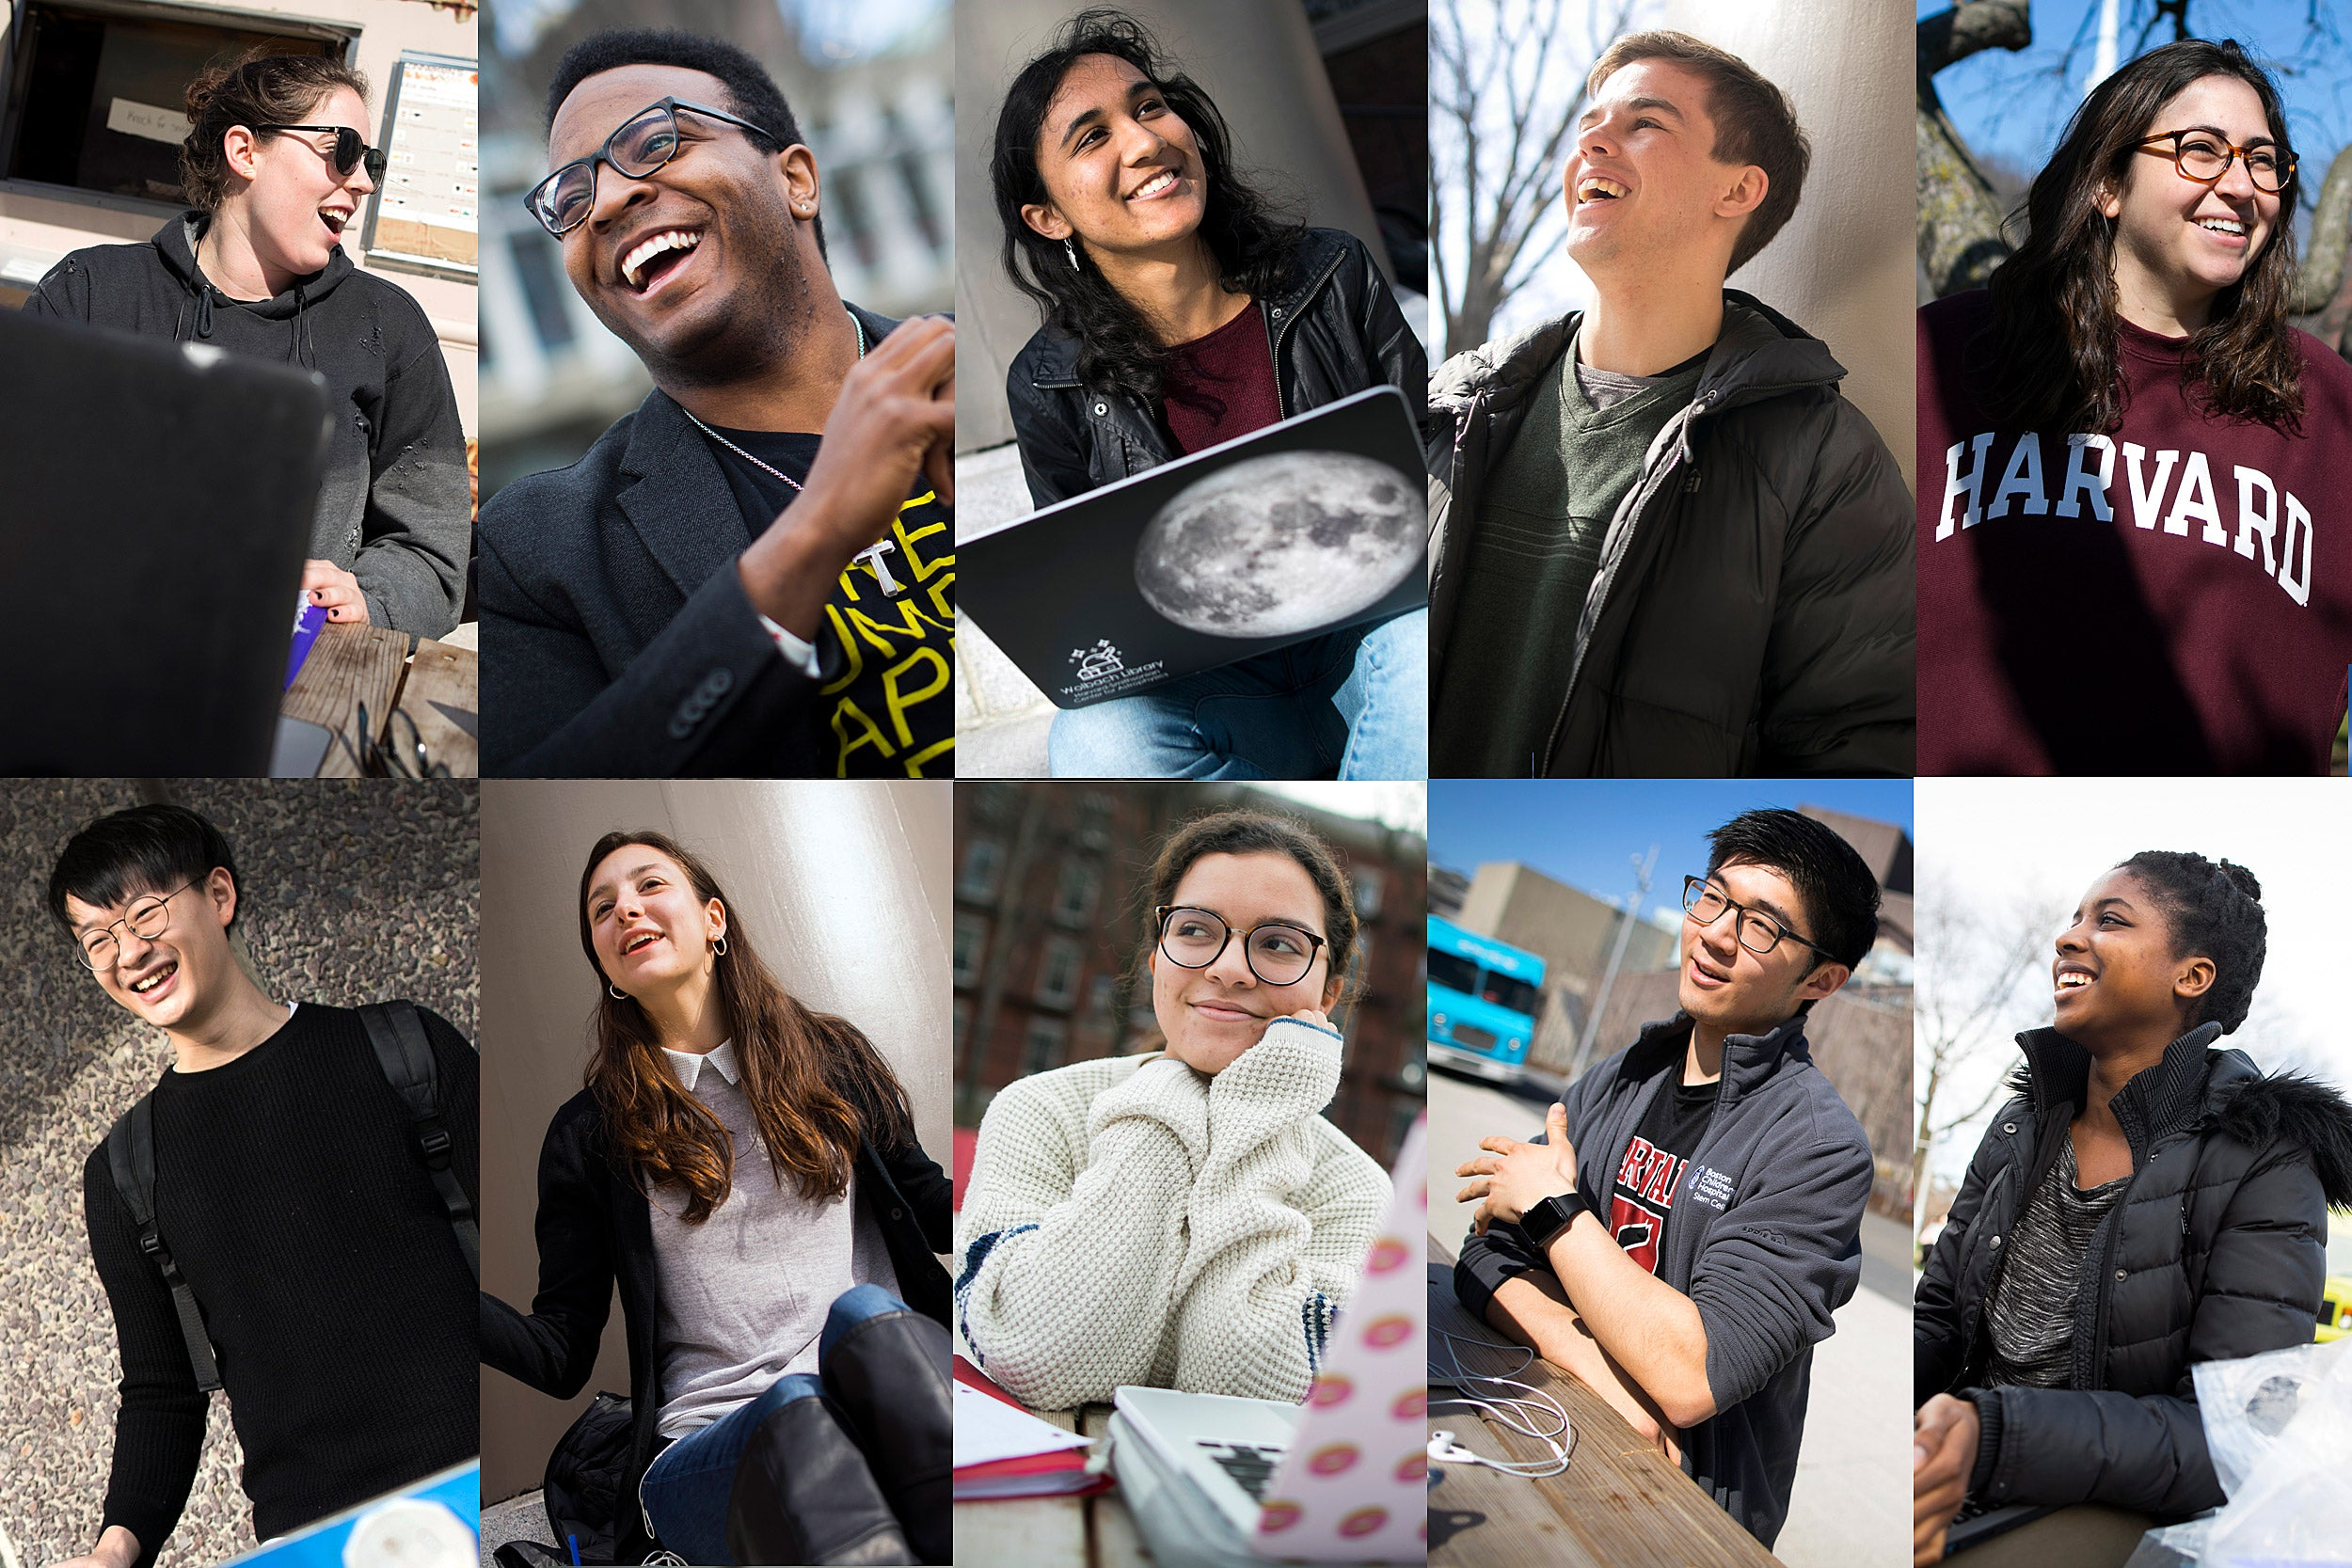 Harvard's new Instagram series, #HarvardUnwind, seeks to show Harvard students' lighter sides, from their favorite entertainment to their personal quirks.